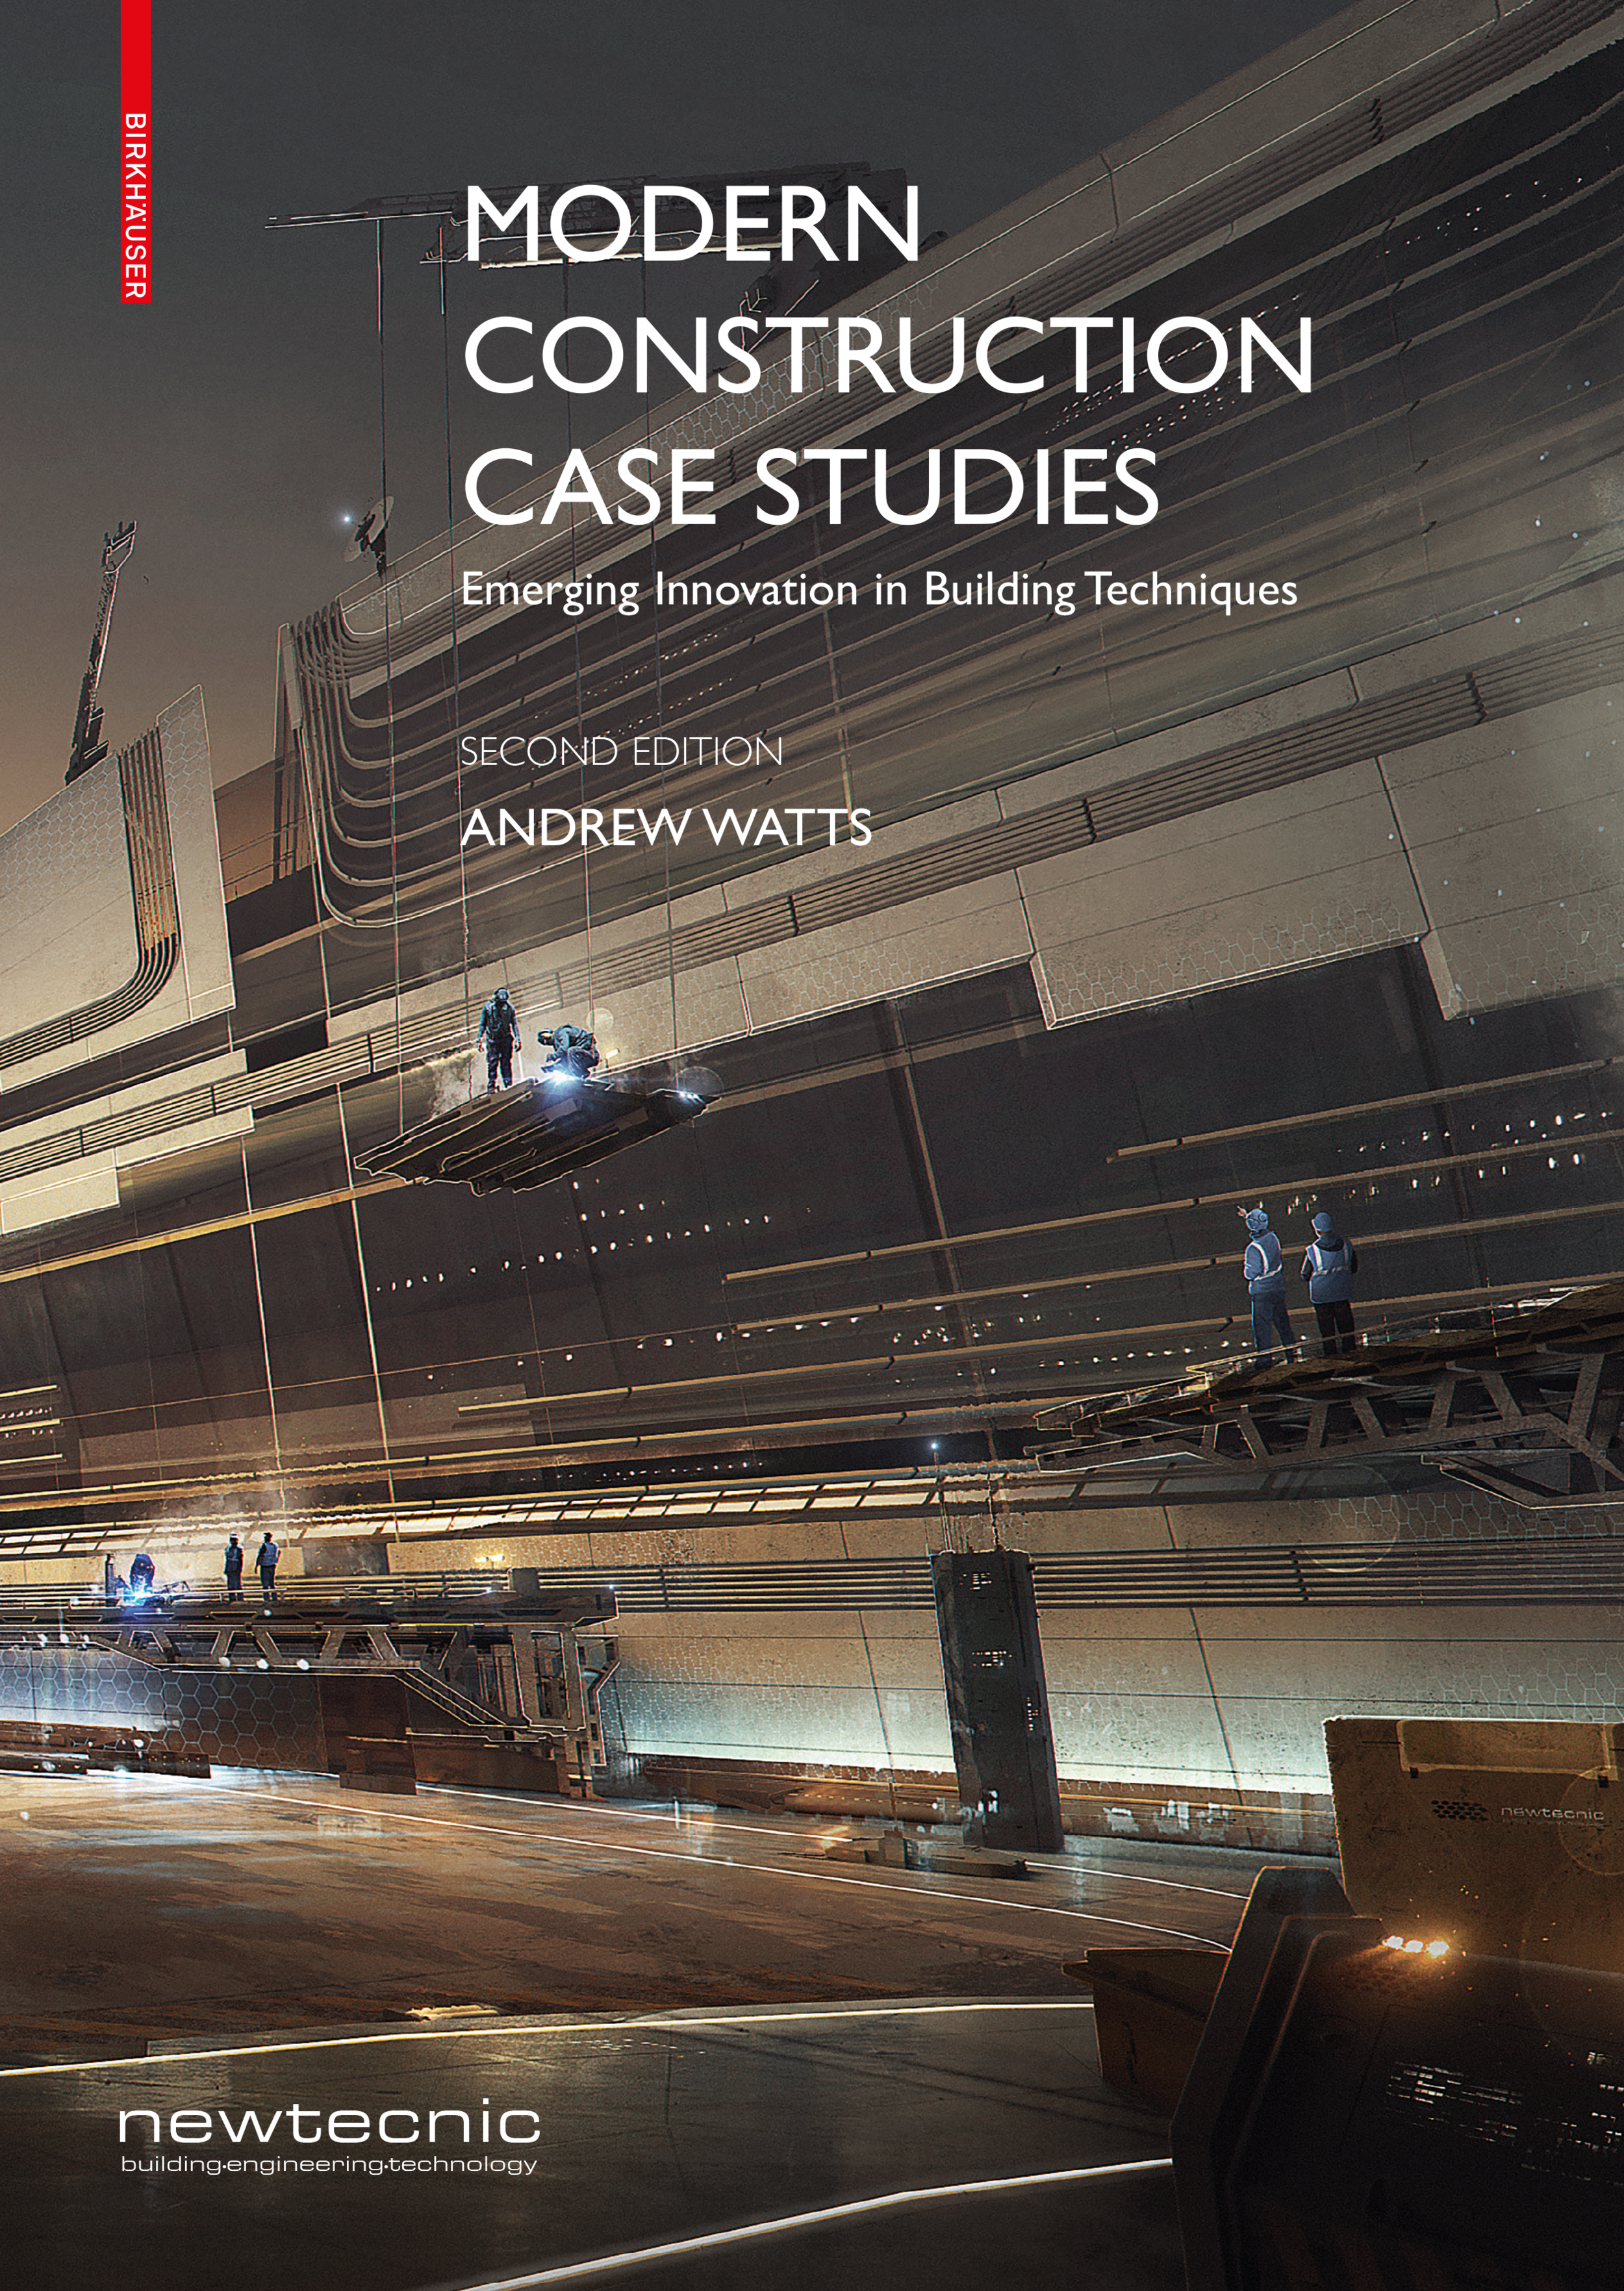 Modern Construction Case Studies, Second Edition  focuses on the interface between the design of facades, structures and environments of 12 building projects, all developed by Newtecnic.